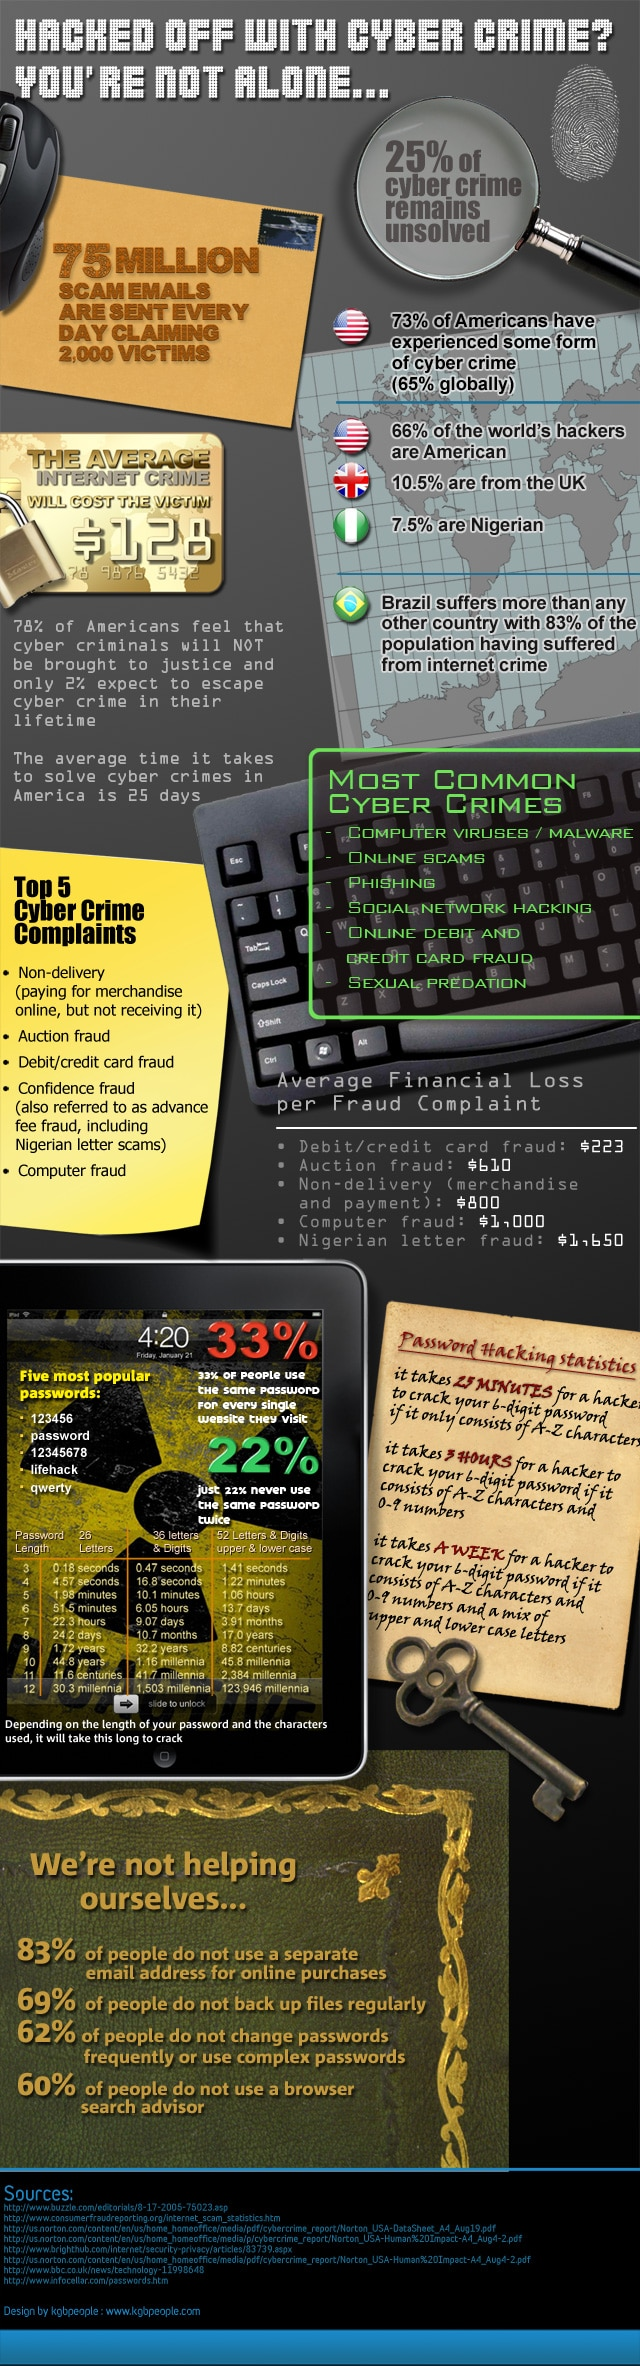 Hacked: The Average Cost Of Being Hacked [Infographic]